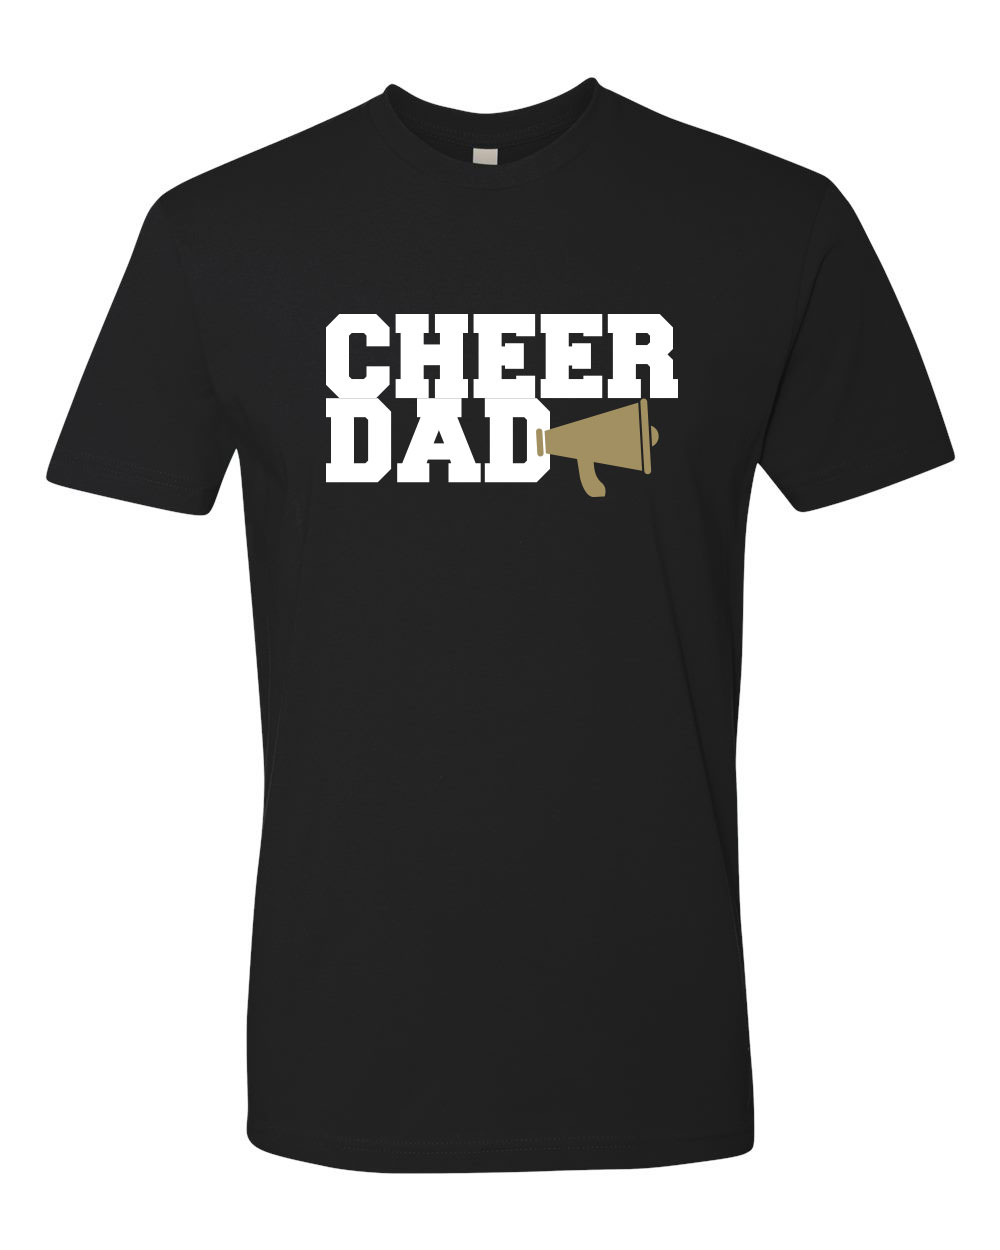 Next_Level_3600_Black_Front_HighCHEERDAD